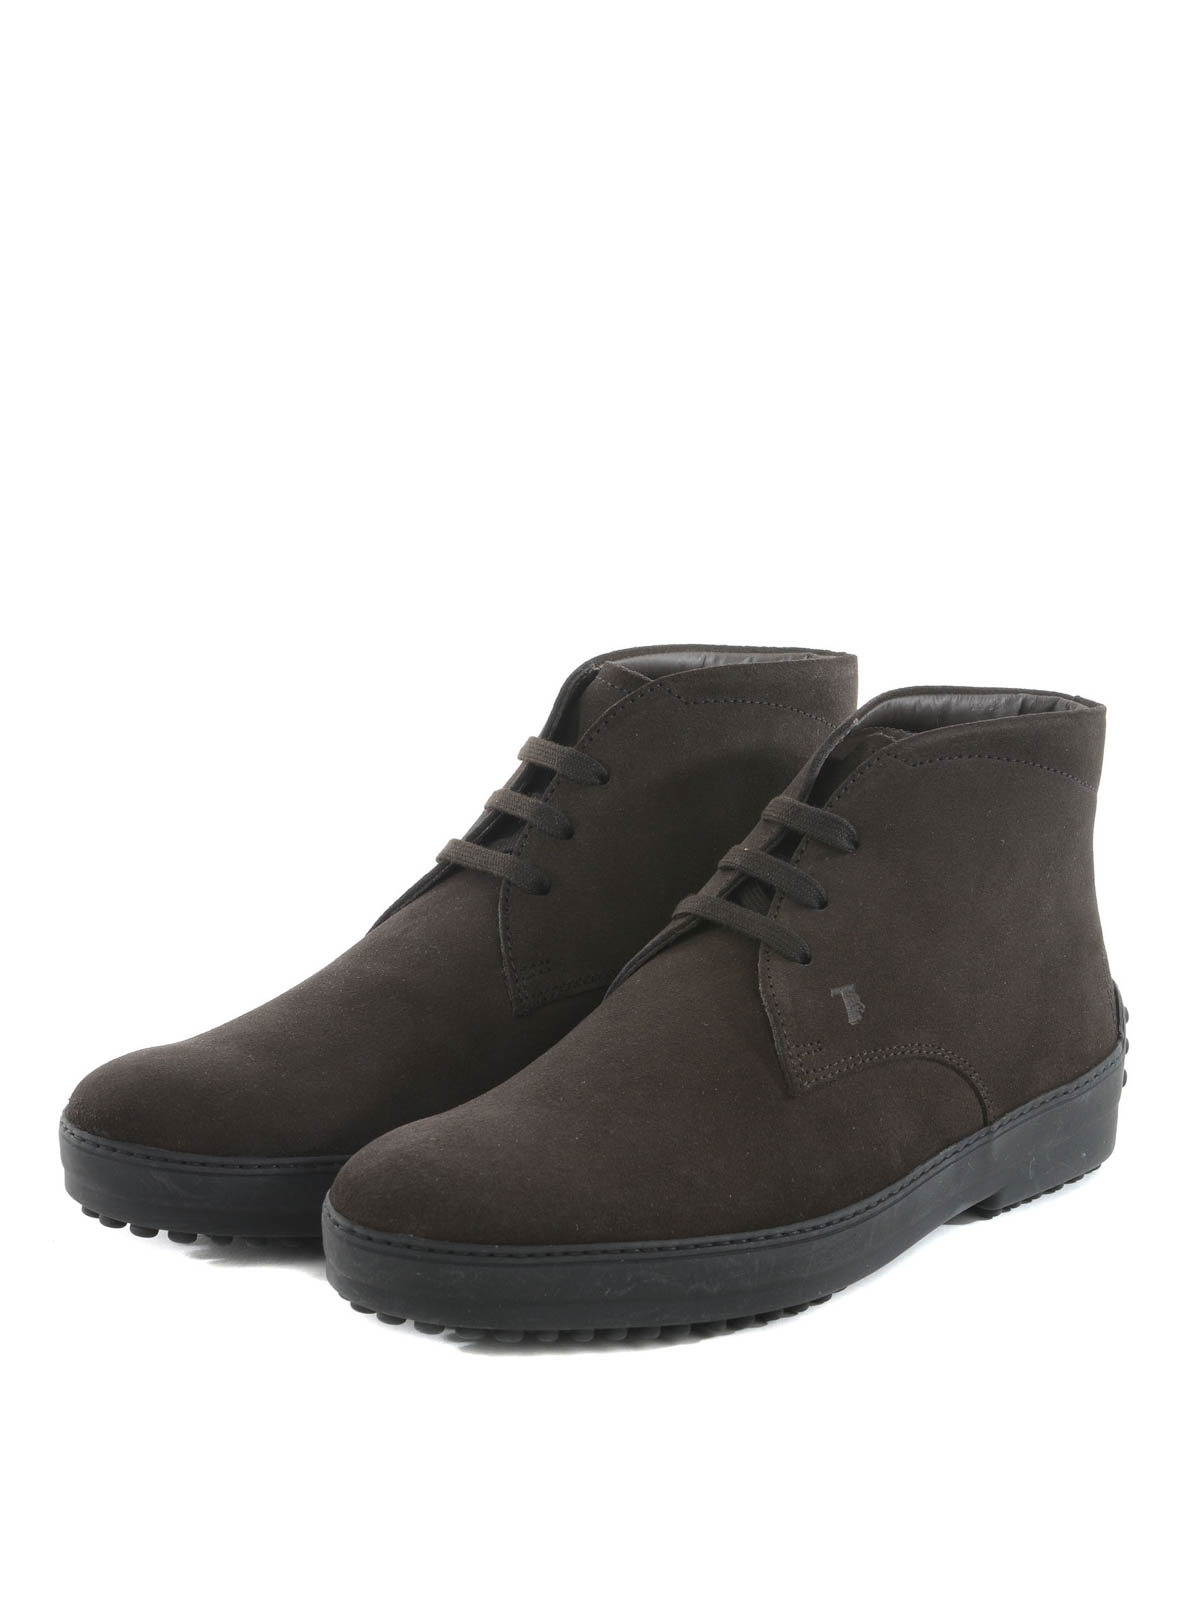 suede desert boots by tod 39 s ankle boots ikrix. Black Bedroom Furniture Sets. Home Design Ideas